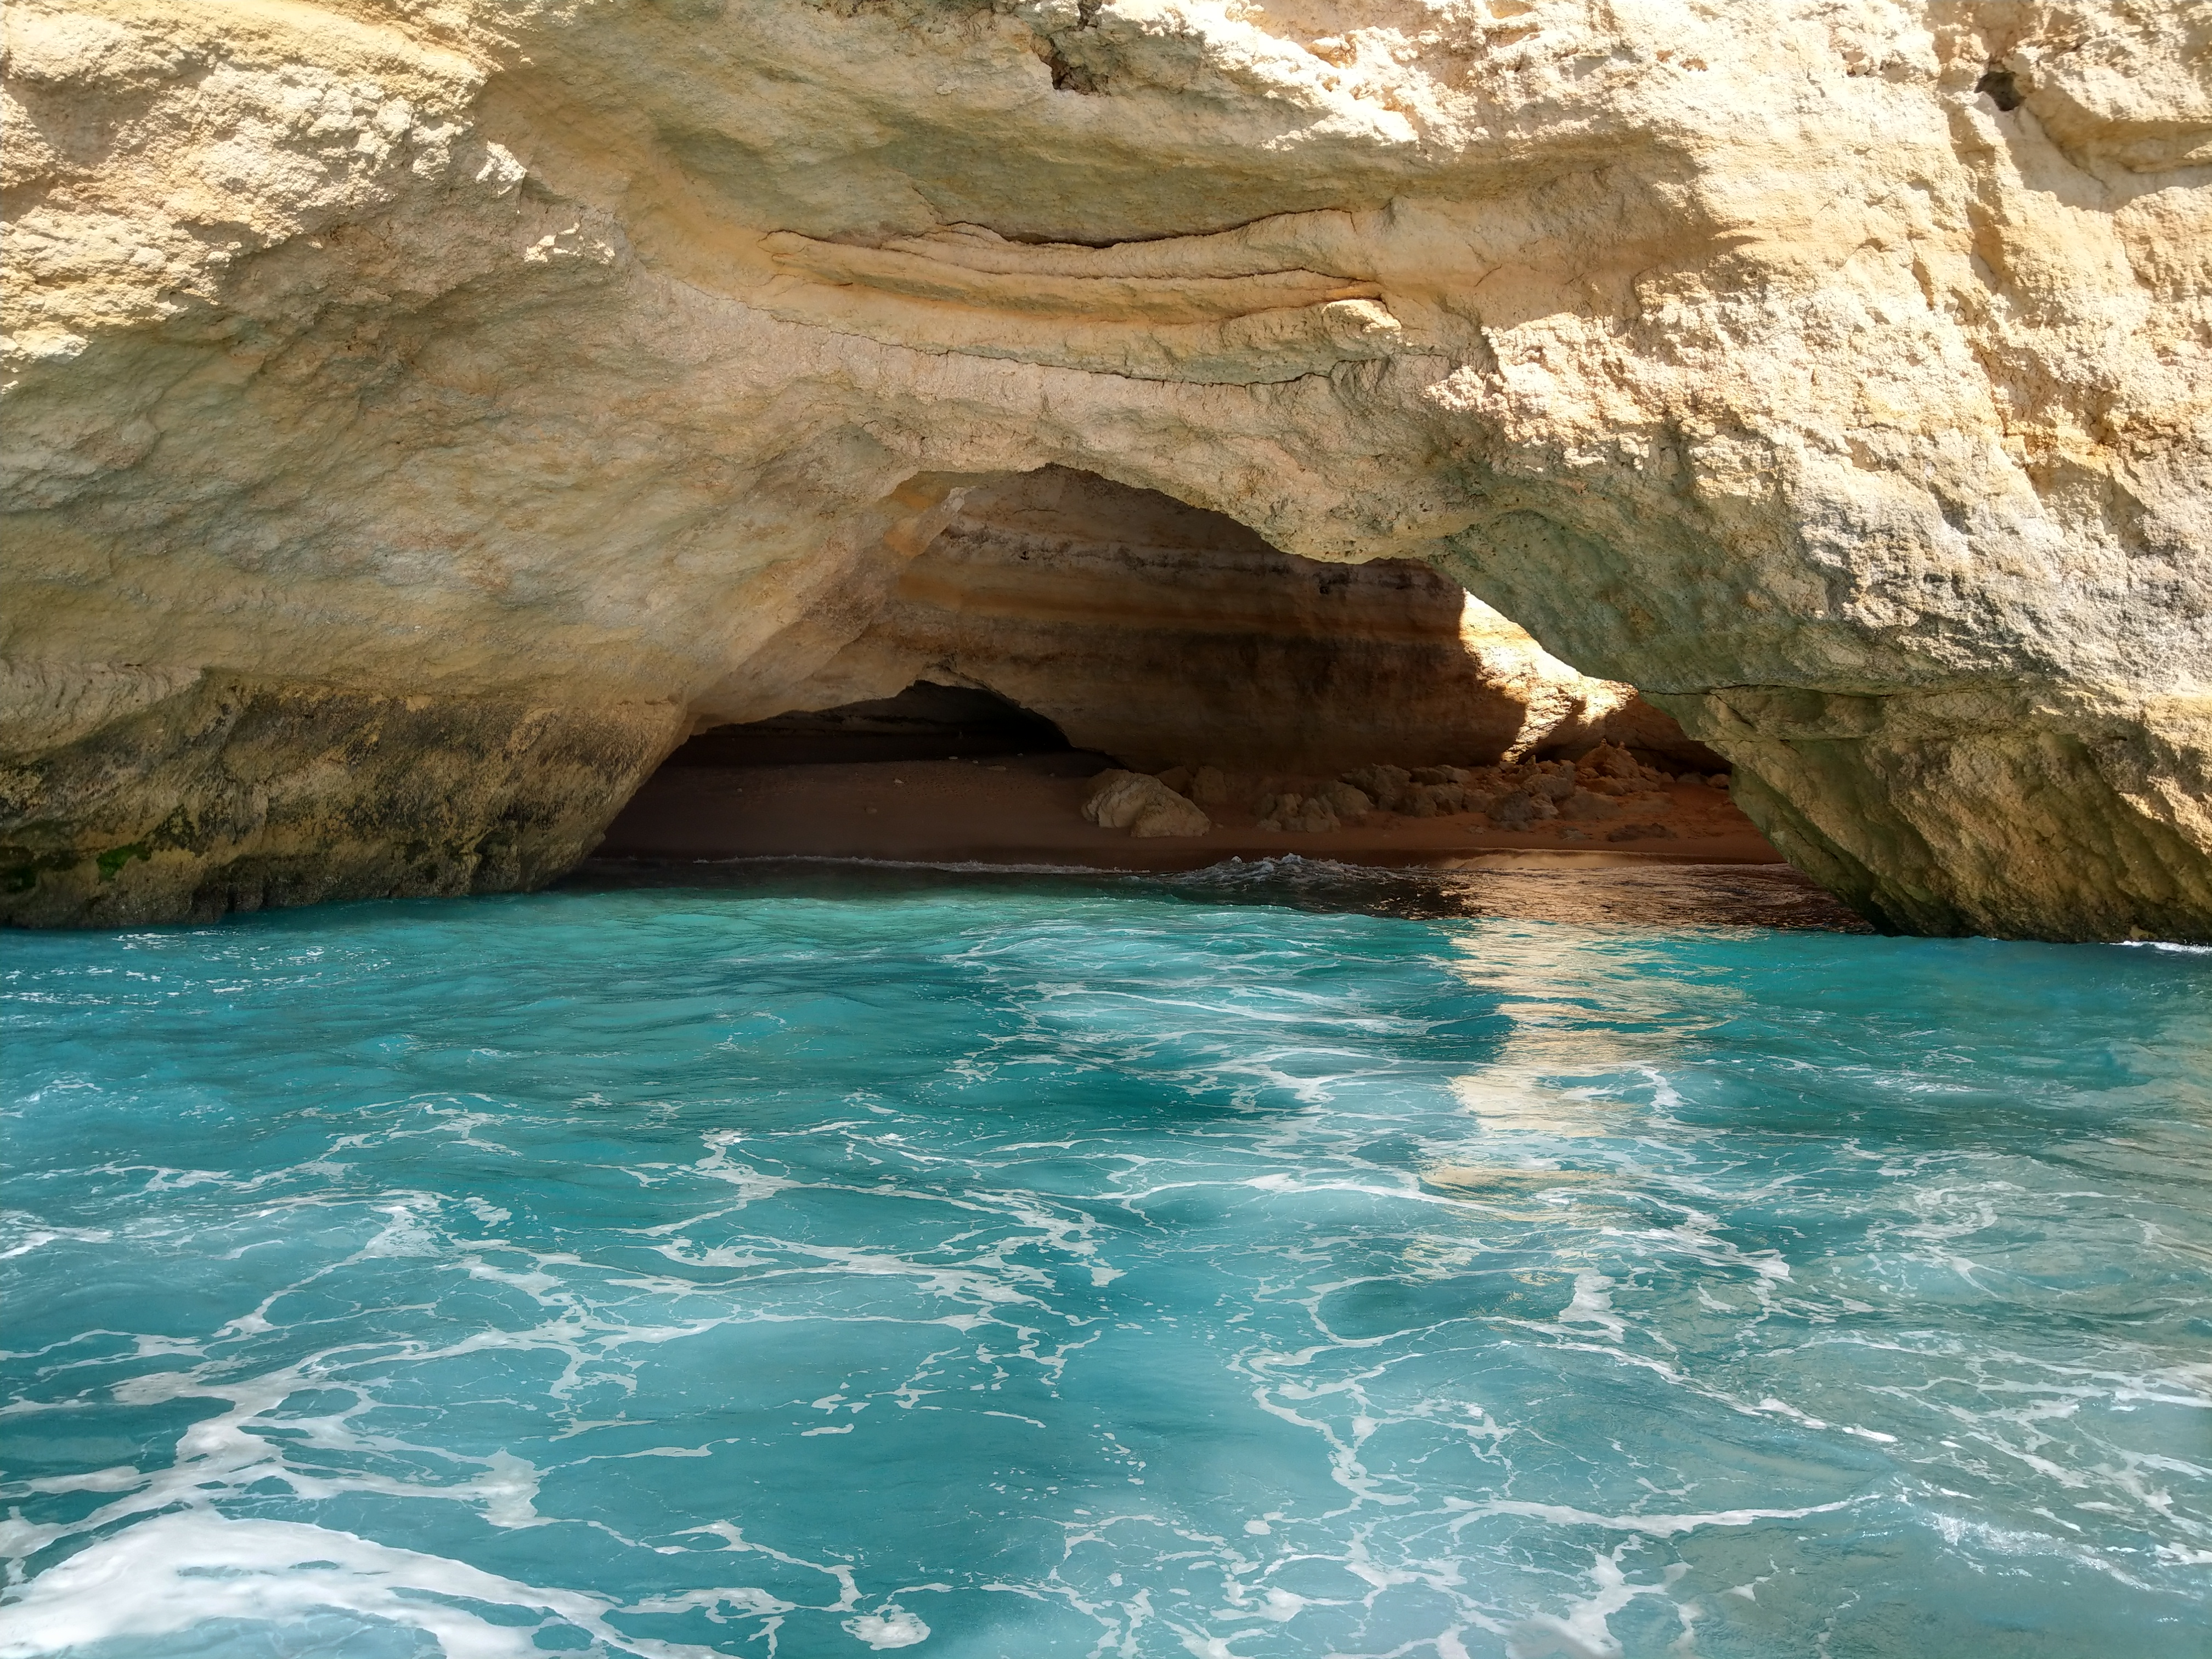 Dolphin and Caves trip with Dream Wave, Albufeira, Portugal